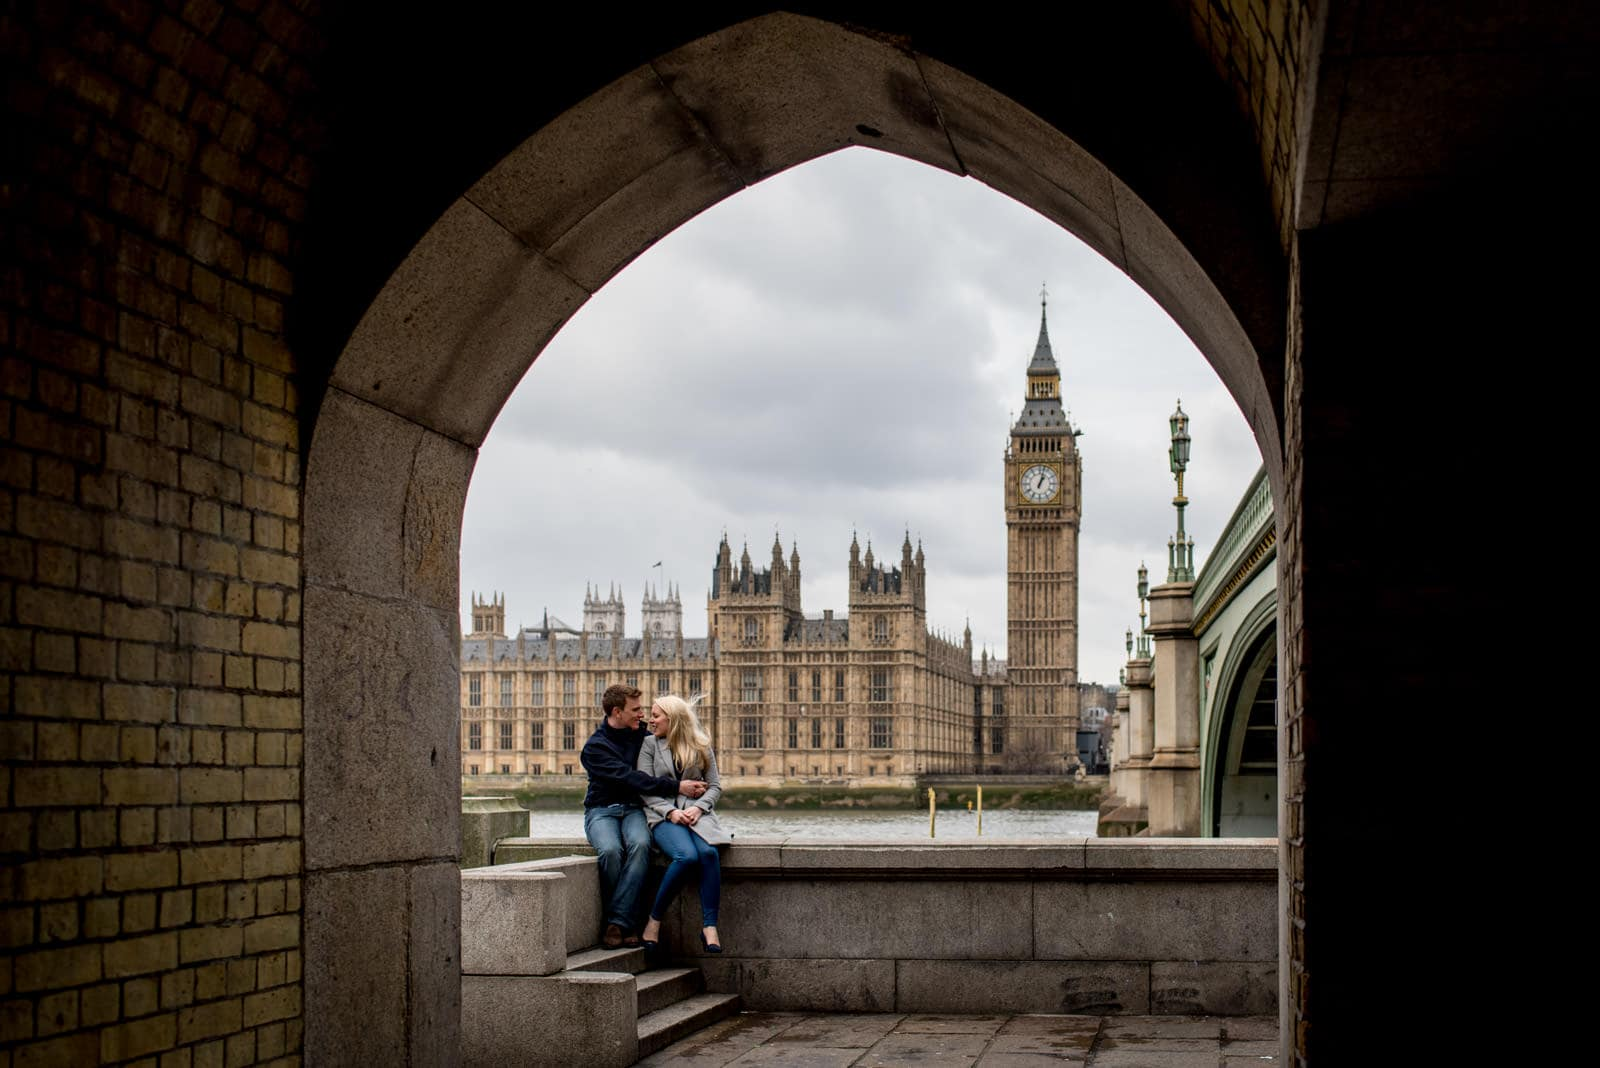 A creative photo of an engaged couple in front of the Houses of Parliament, Big Ben and Westminster Bridge on London's Southbank